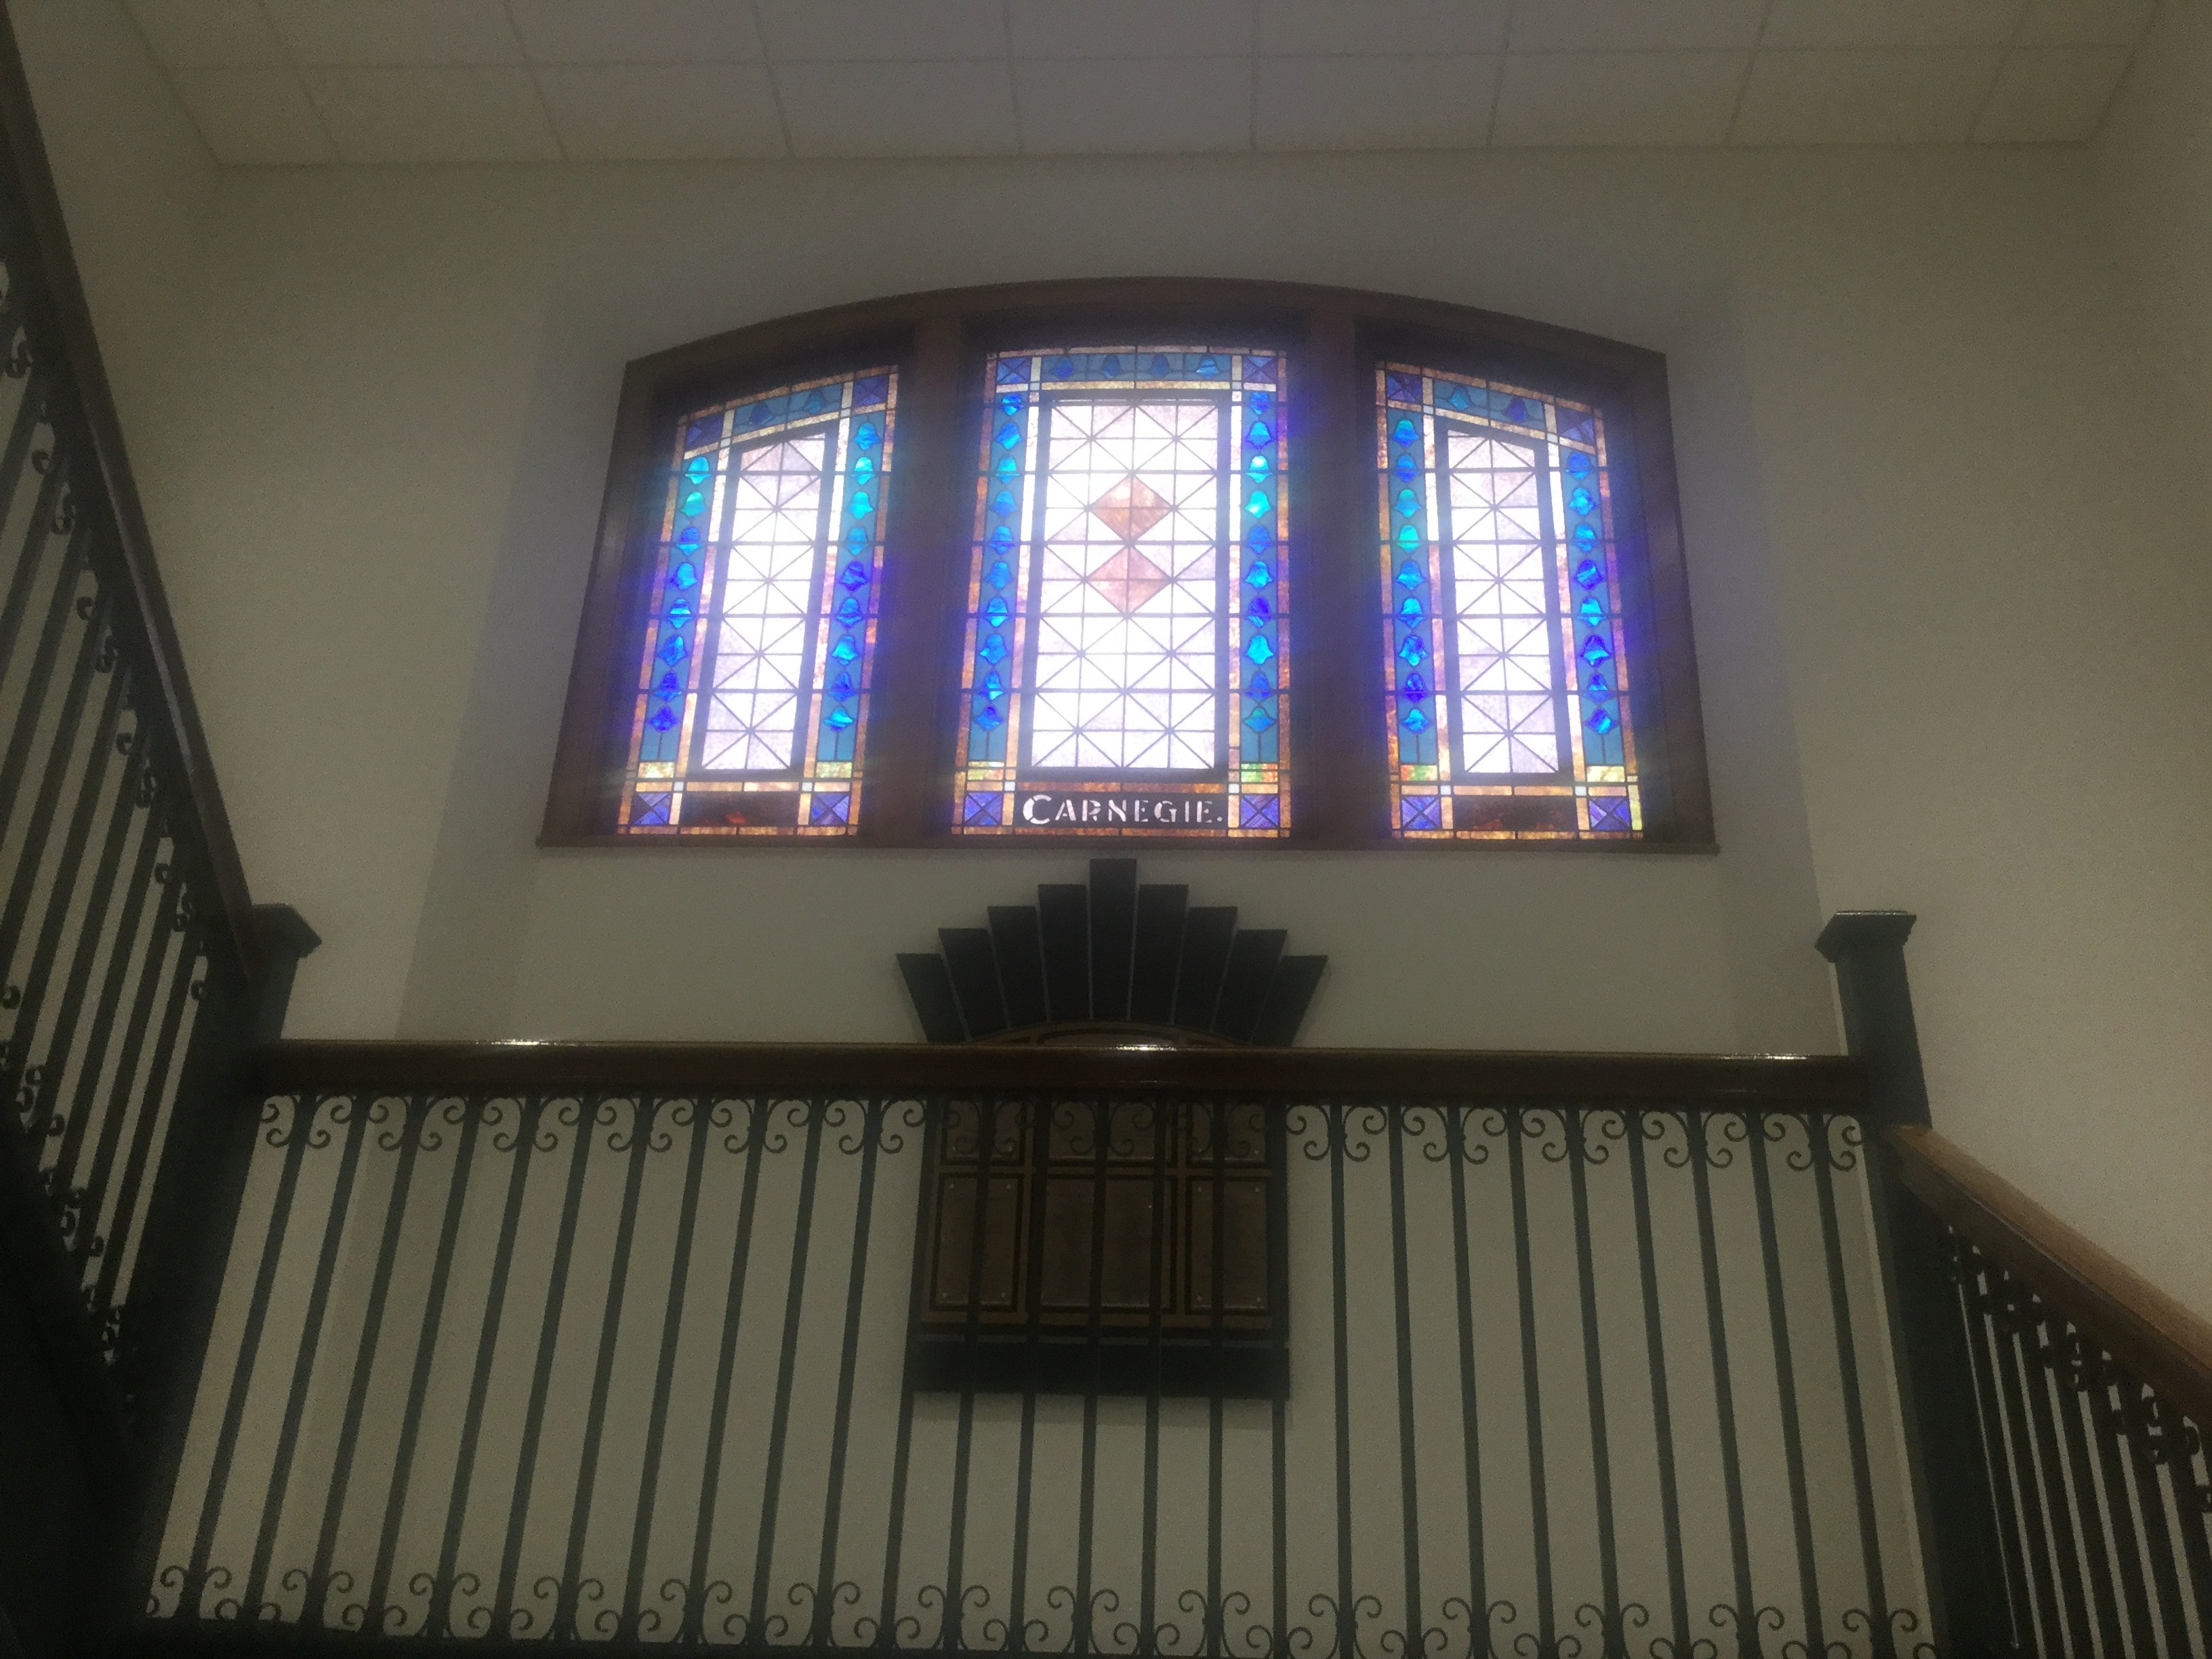 The stained glass window in the foyer of Norrington.